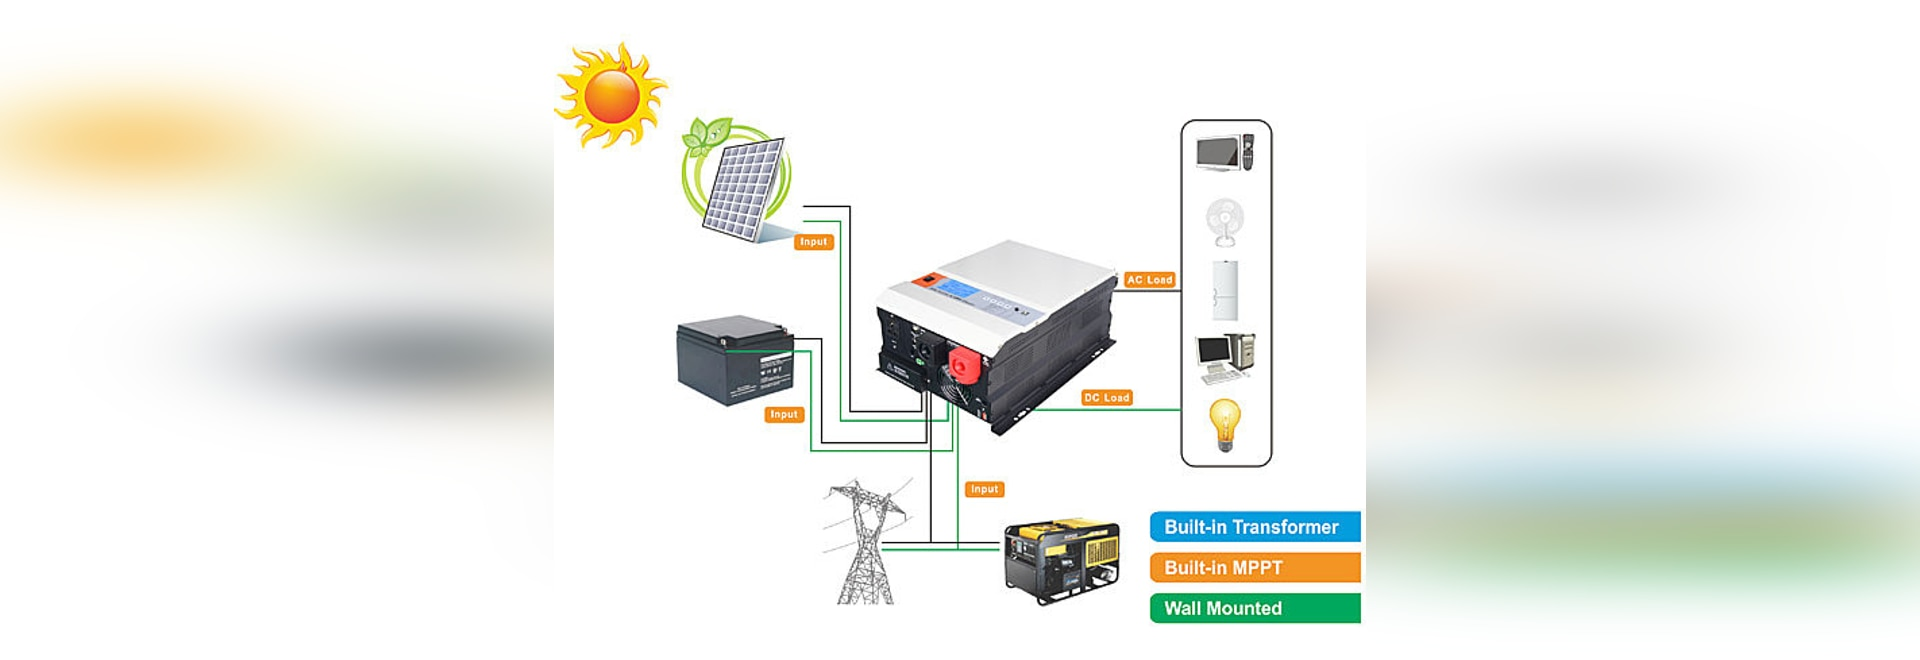 Sorotec Pure Sine Wave Low Frequency Off Grid Wall Mounted Solar Power Inverter Systerm System 1